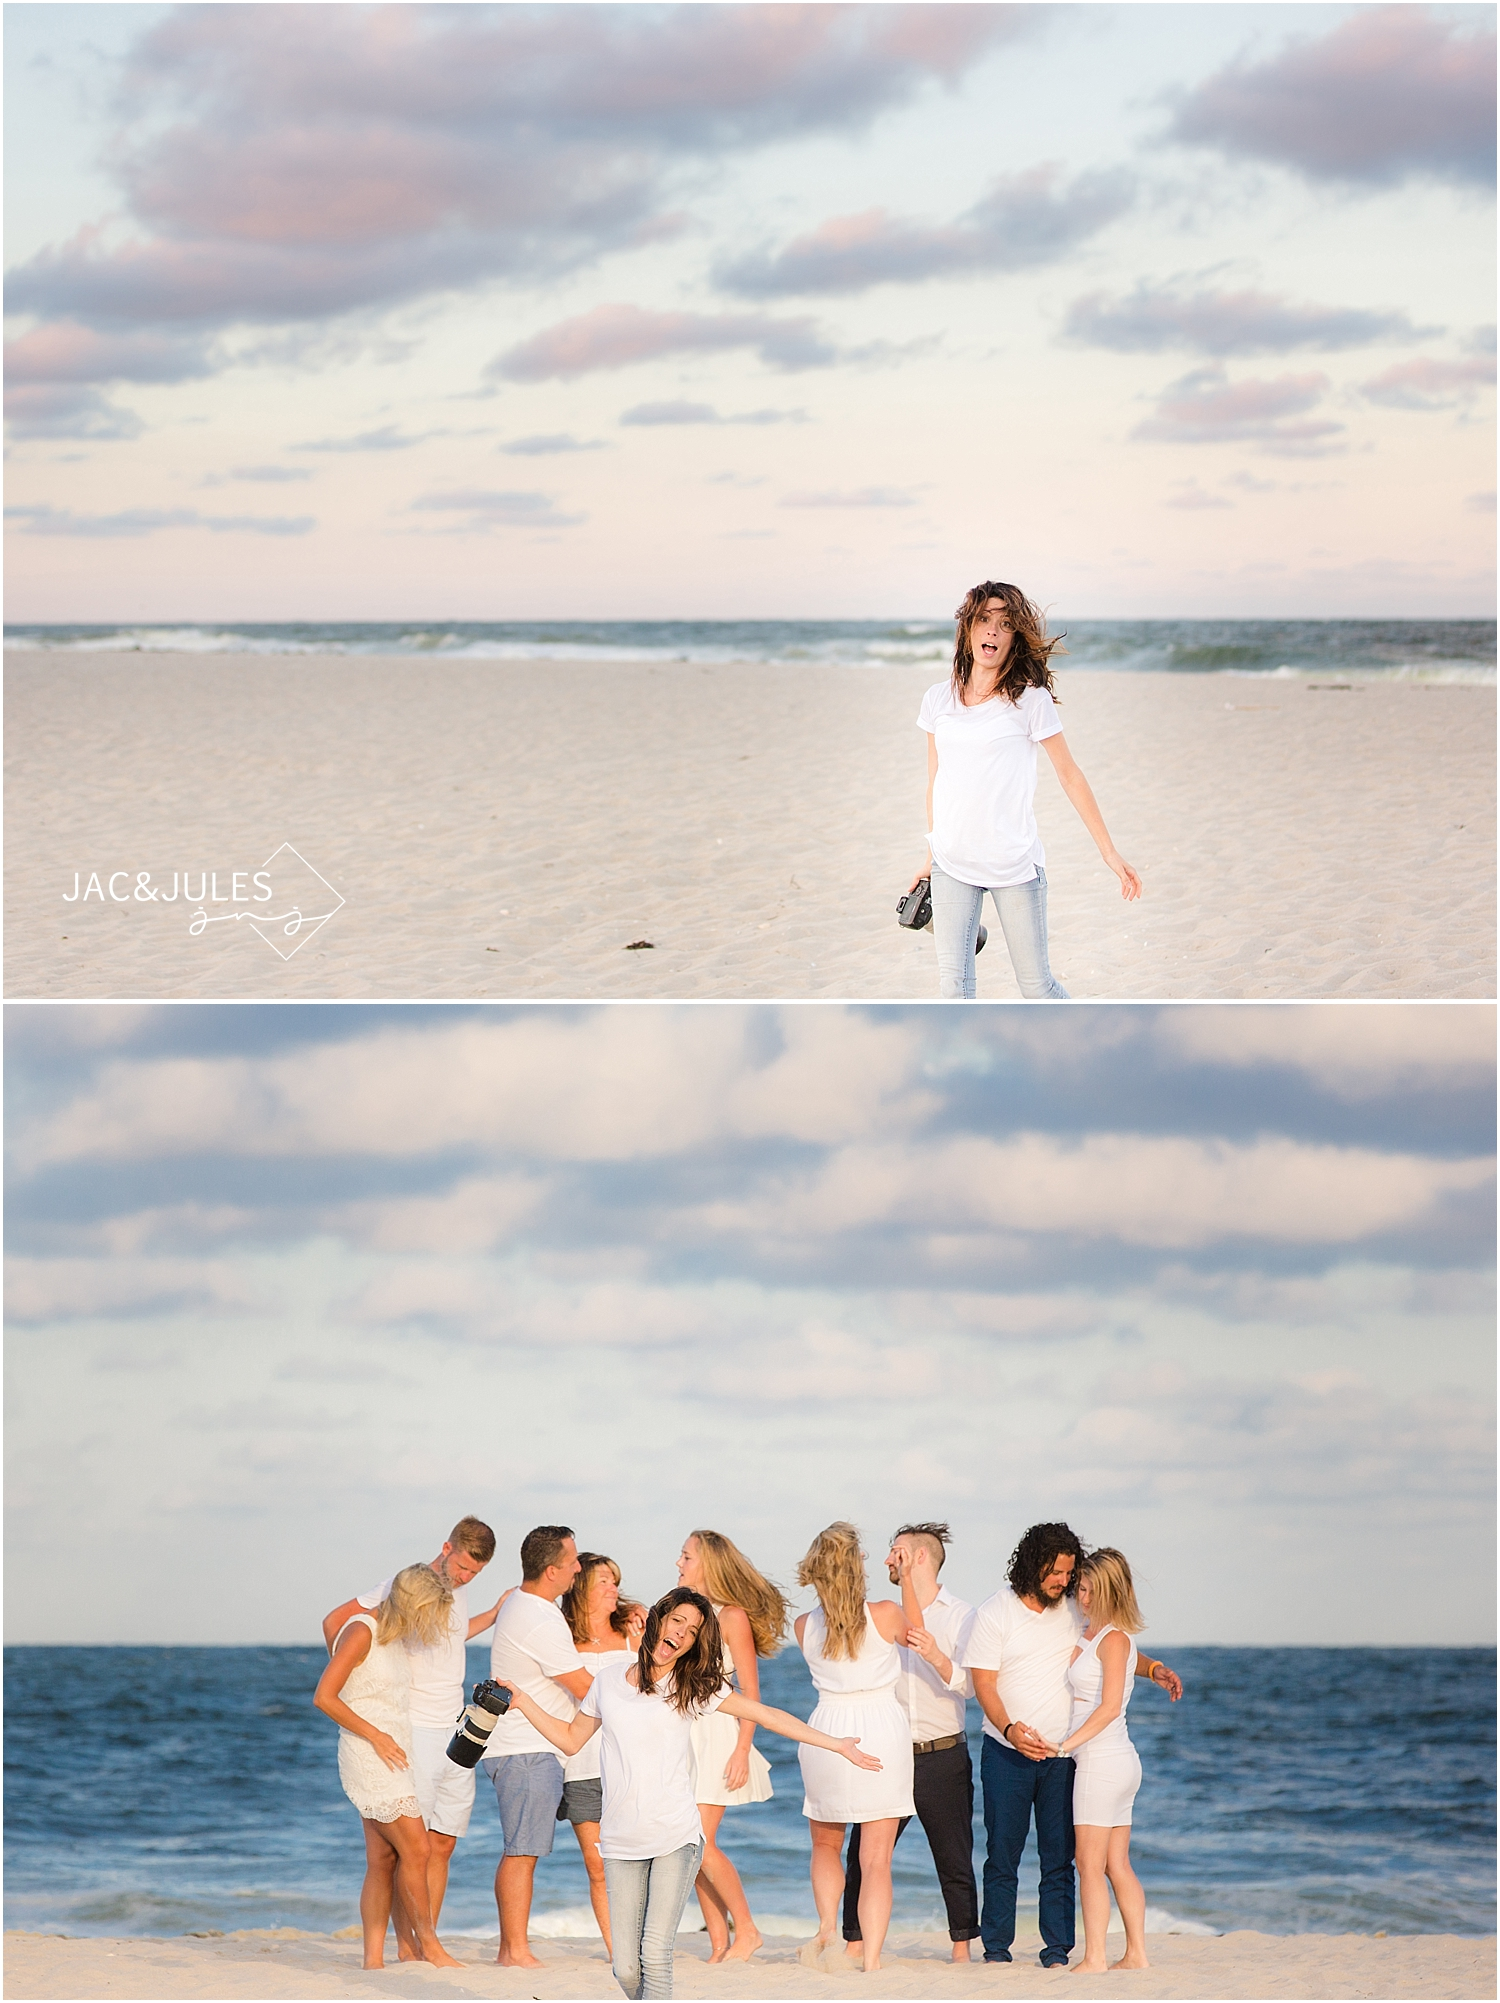 jacnjules photographs fun family on the beach in LBI NJ